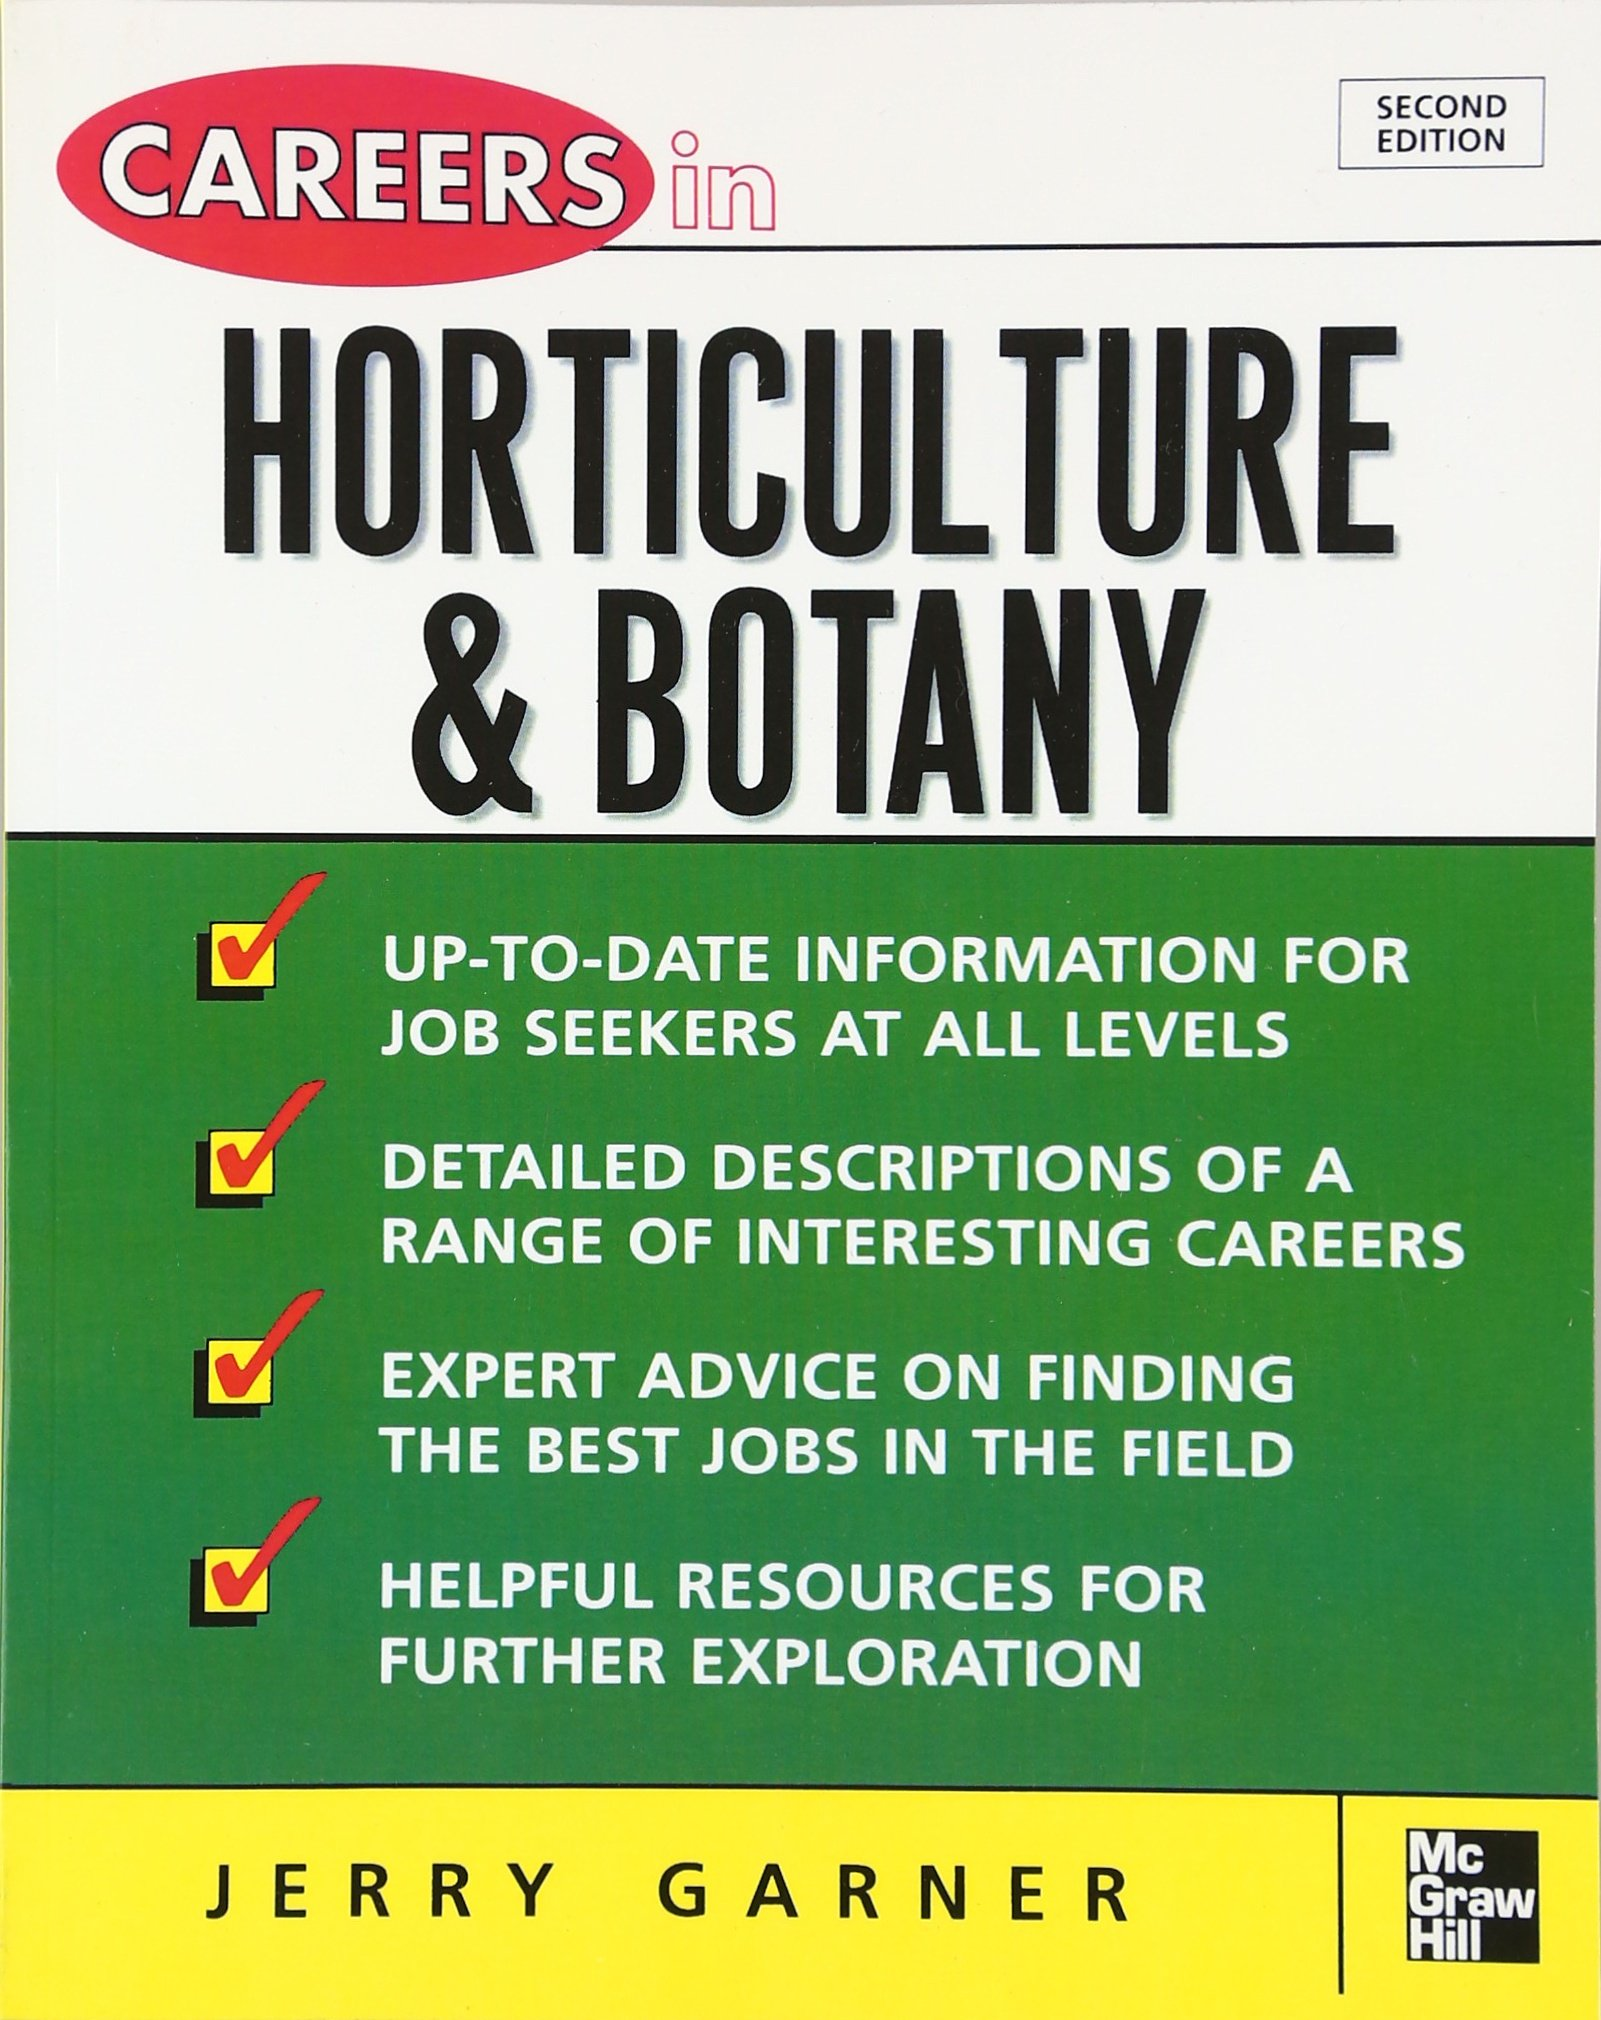 careers in horticulture and botany careers in acirc brvbar series jerry careers in horticulture and botany careers inacirc brvbar series jerry garner 9780071467735 com books